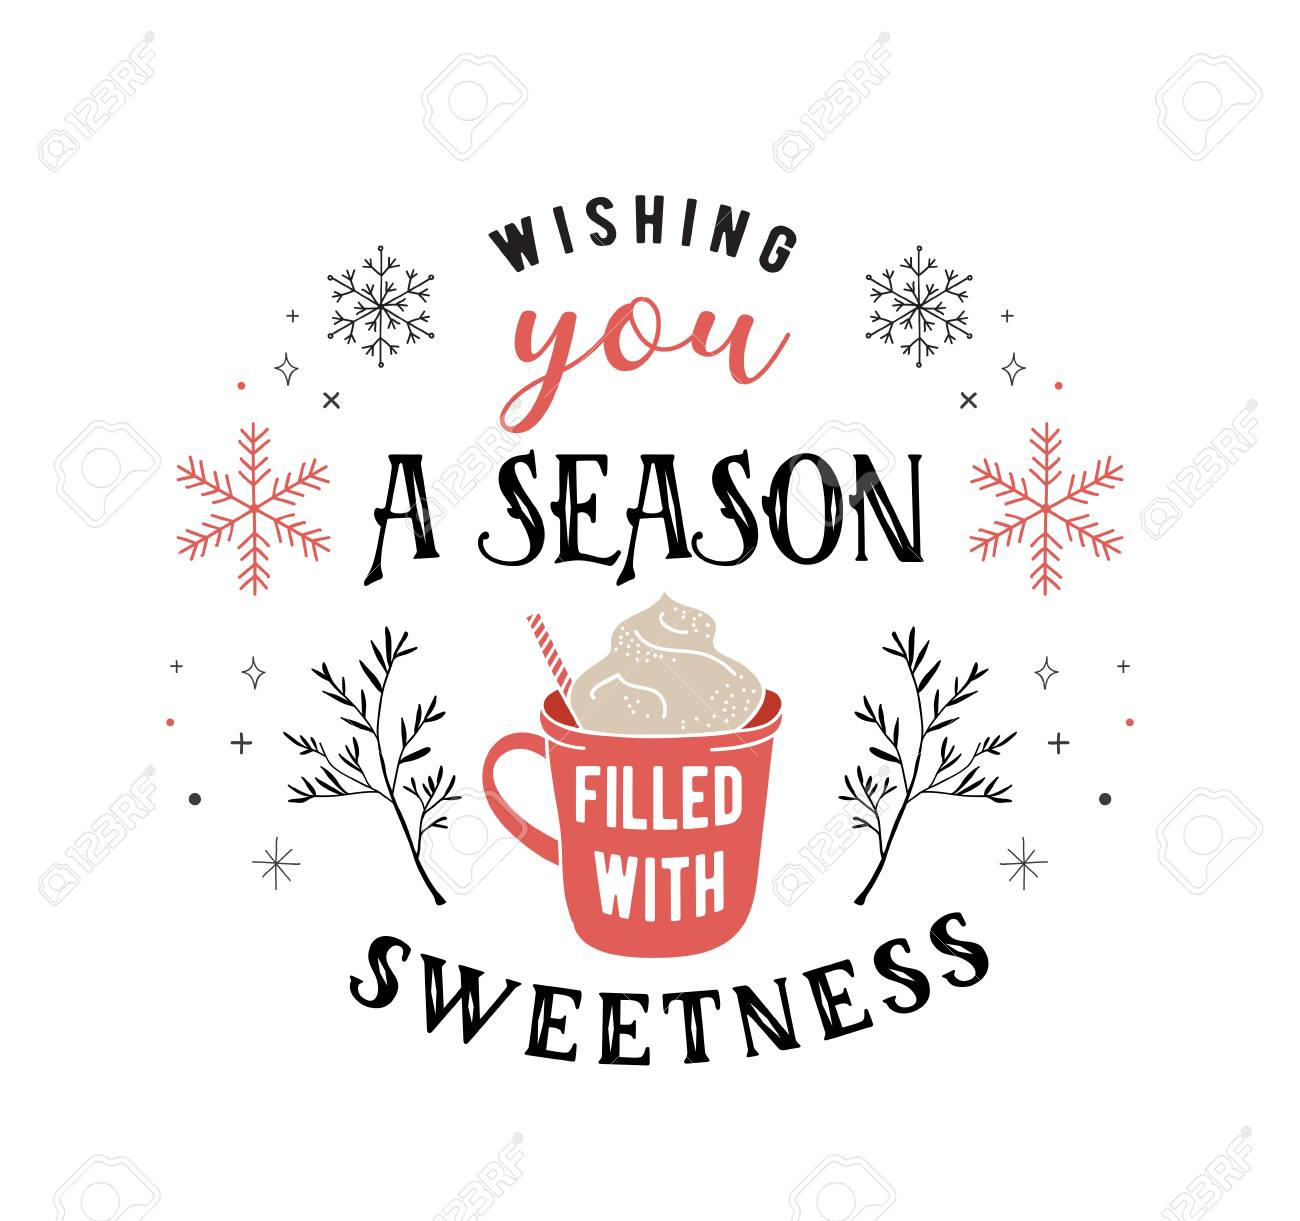 Scandinavian style, simple and stylish Merry Christmas greeting card with hand drawn elements, quotes, lettering - 108844973